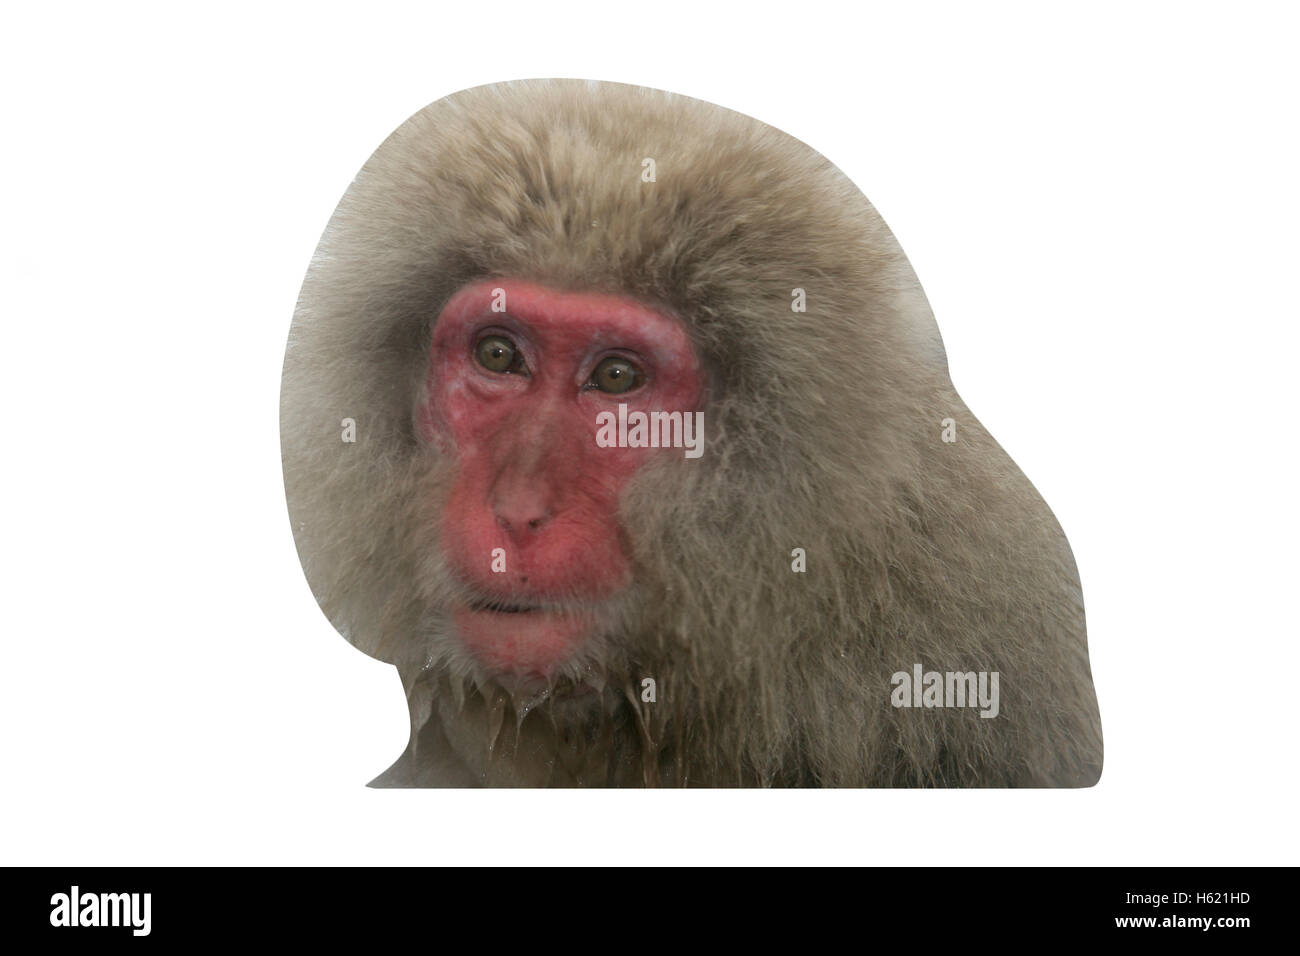 Snow monkey or Japanese macaque, Macaca fuscata, single mammal by water, Japan Stock Photo